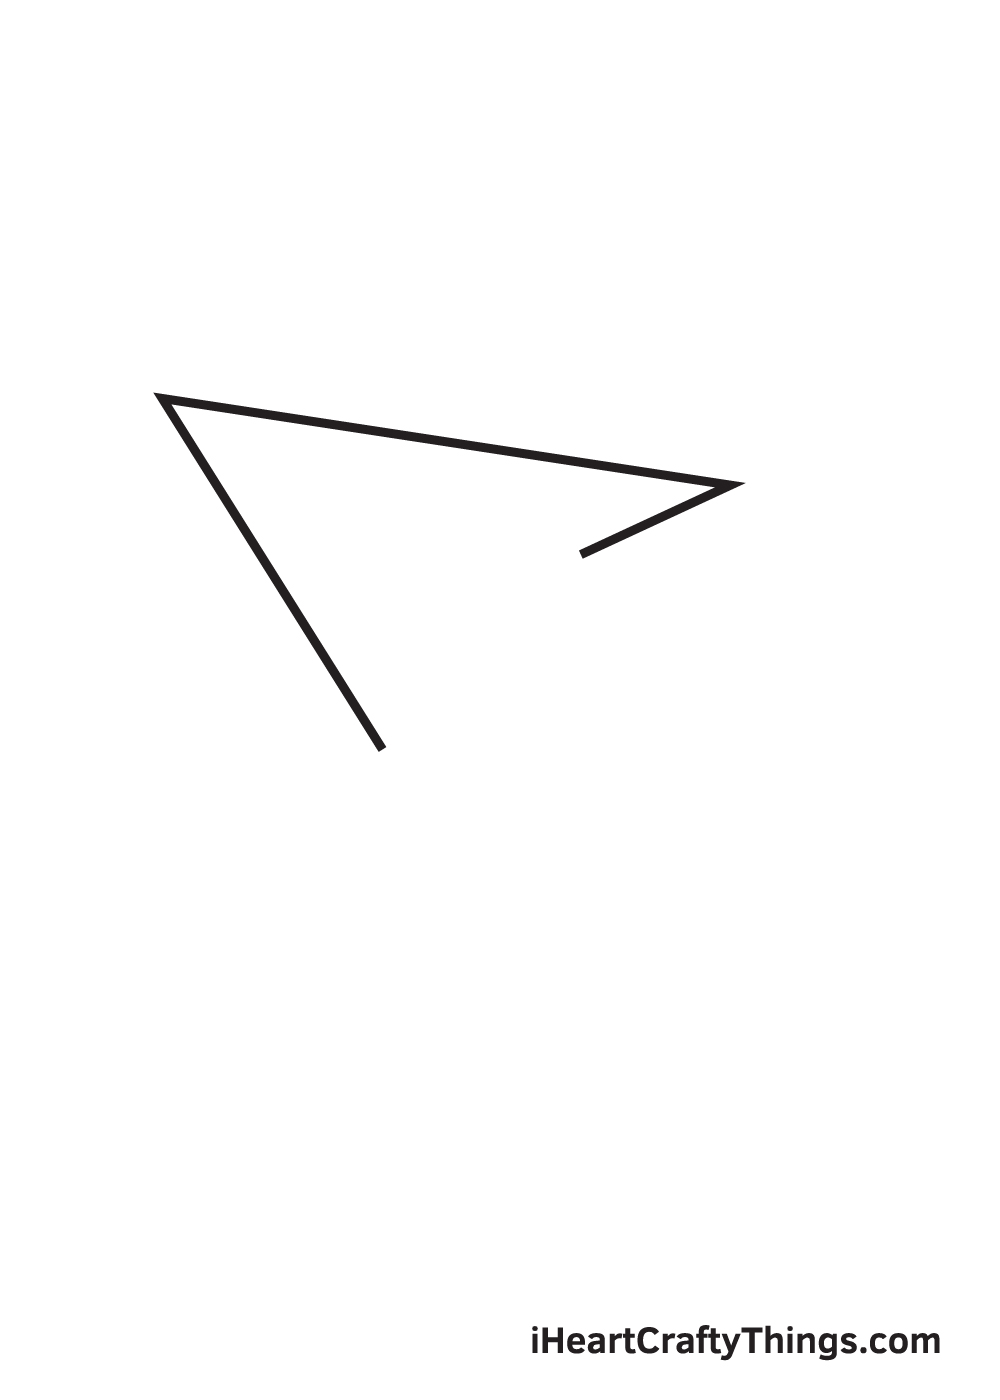 paper airplane drawing step 3